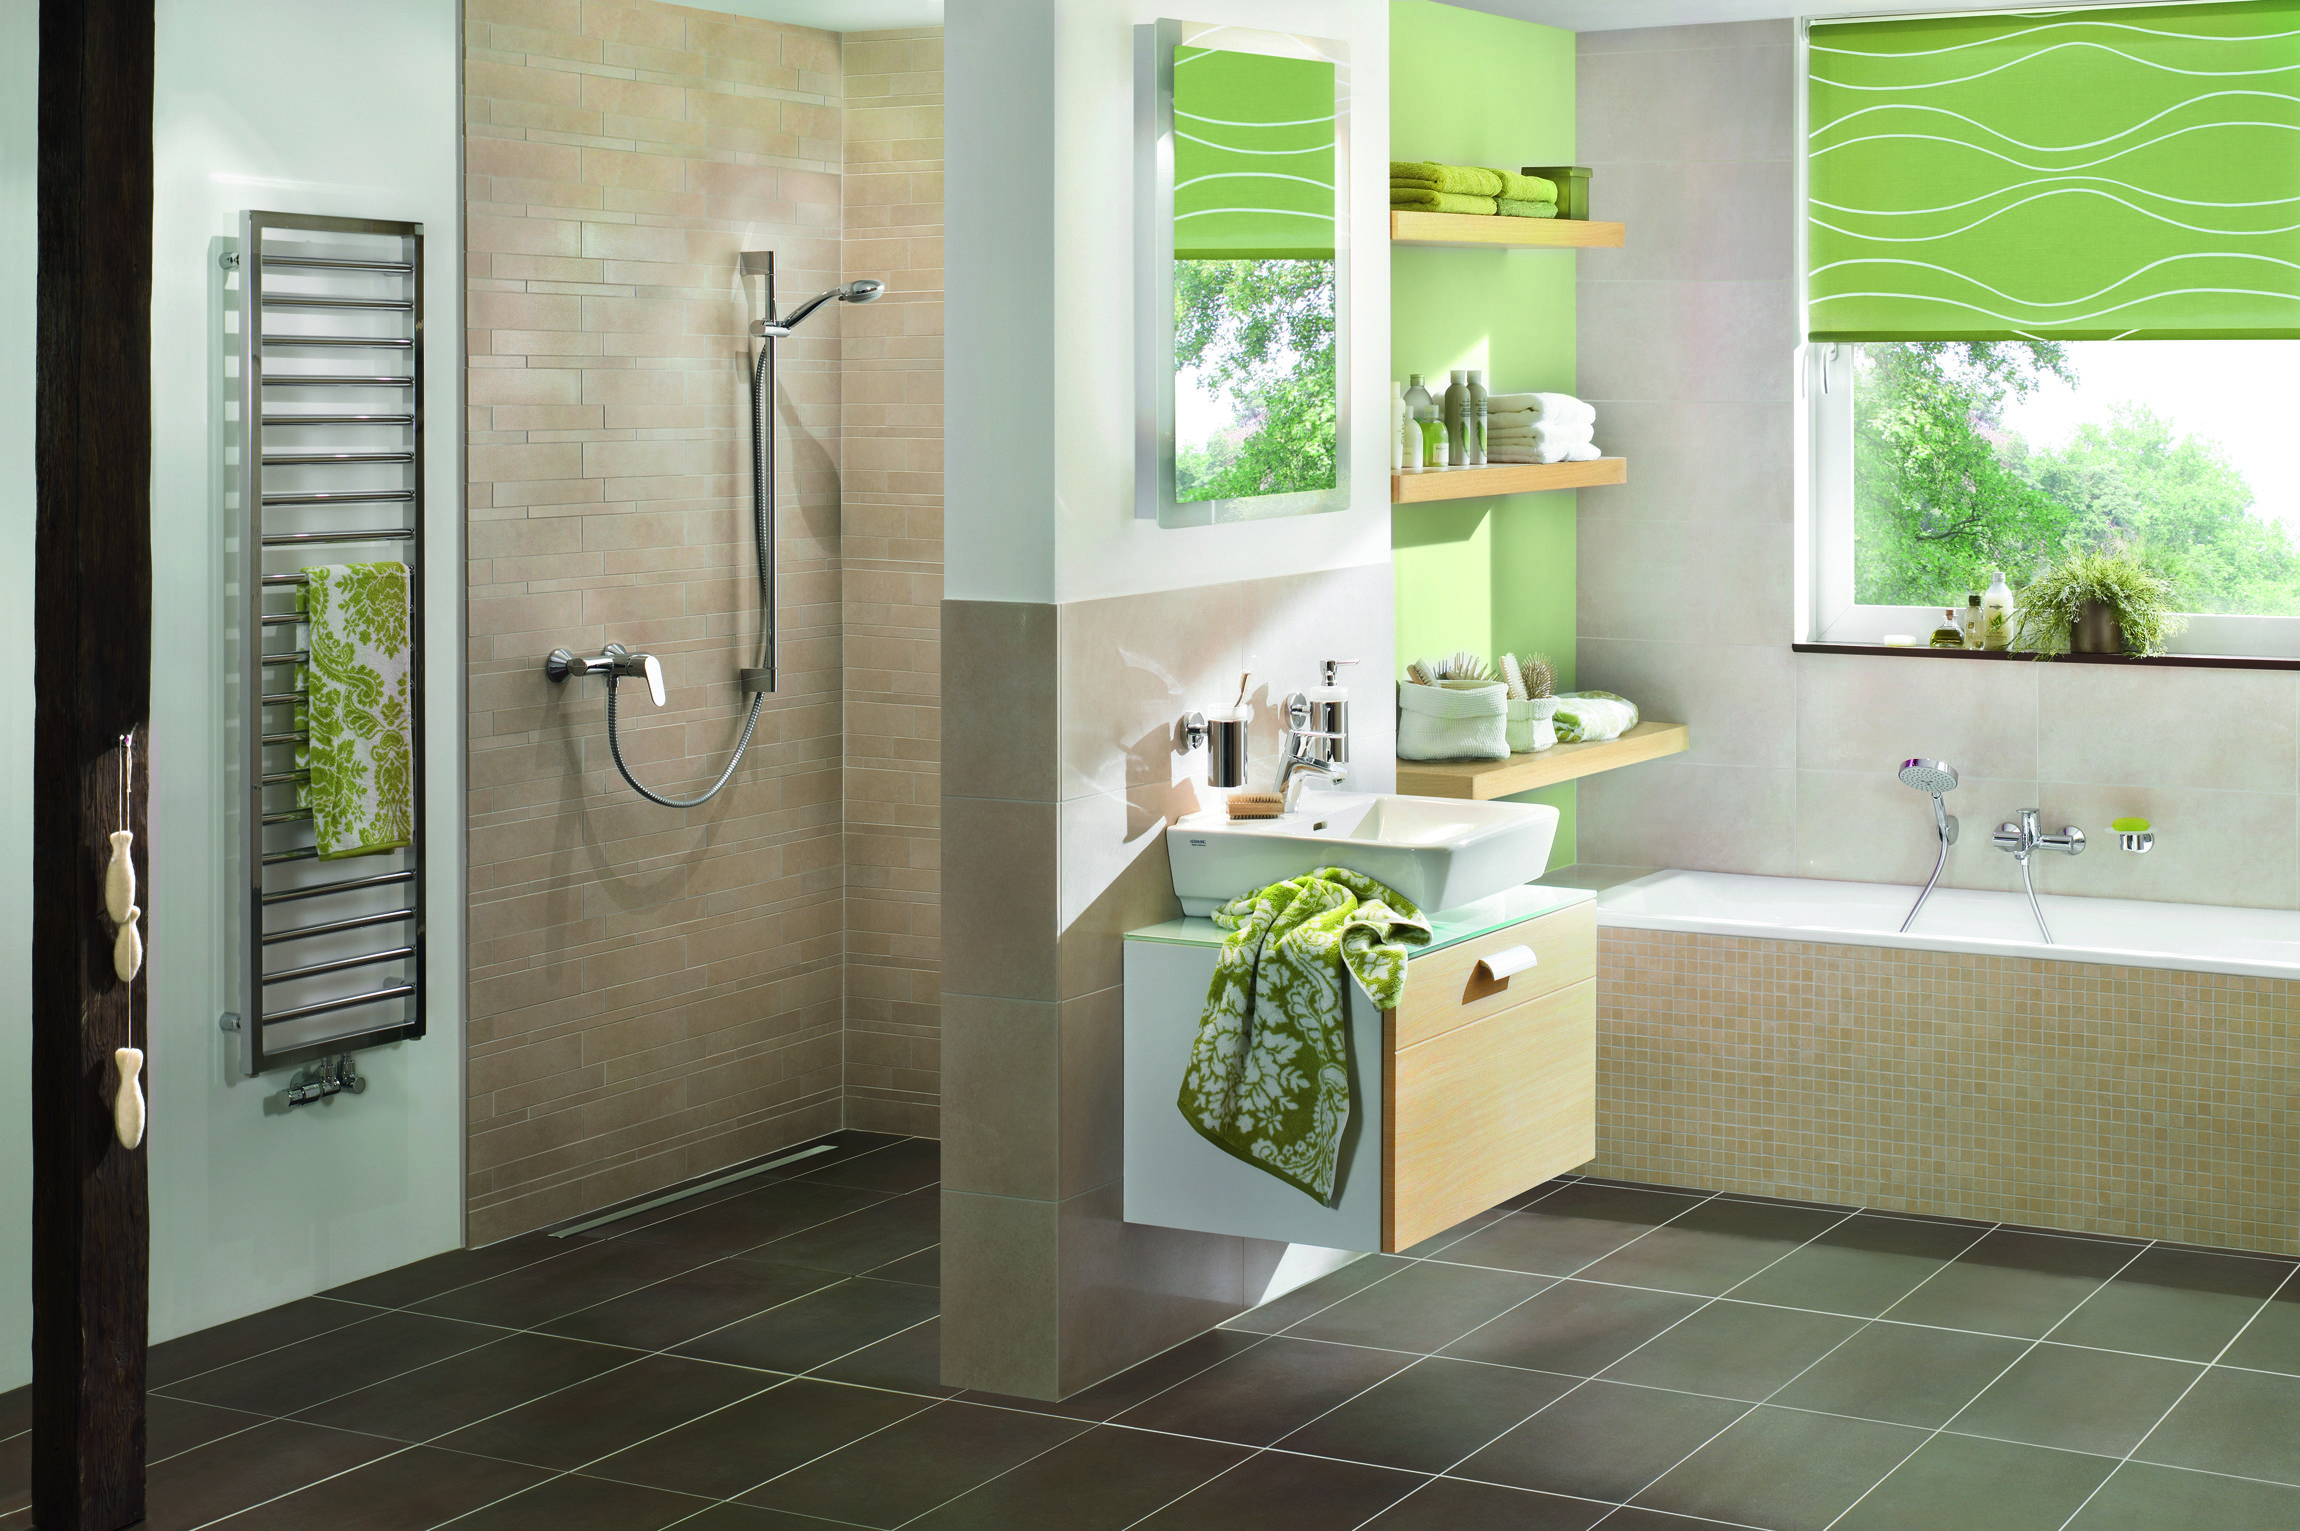 1000+ images about bad on pinterest | toilets, wall decor and haus